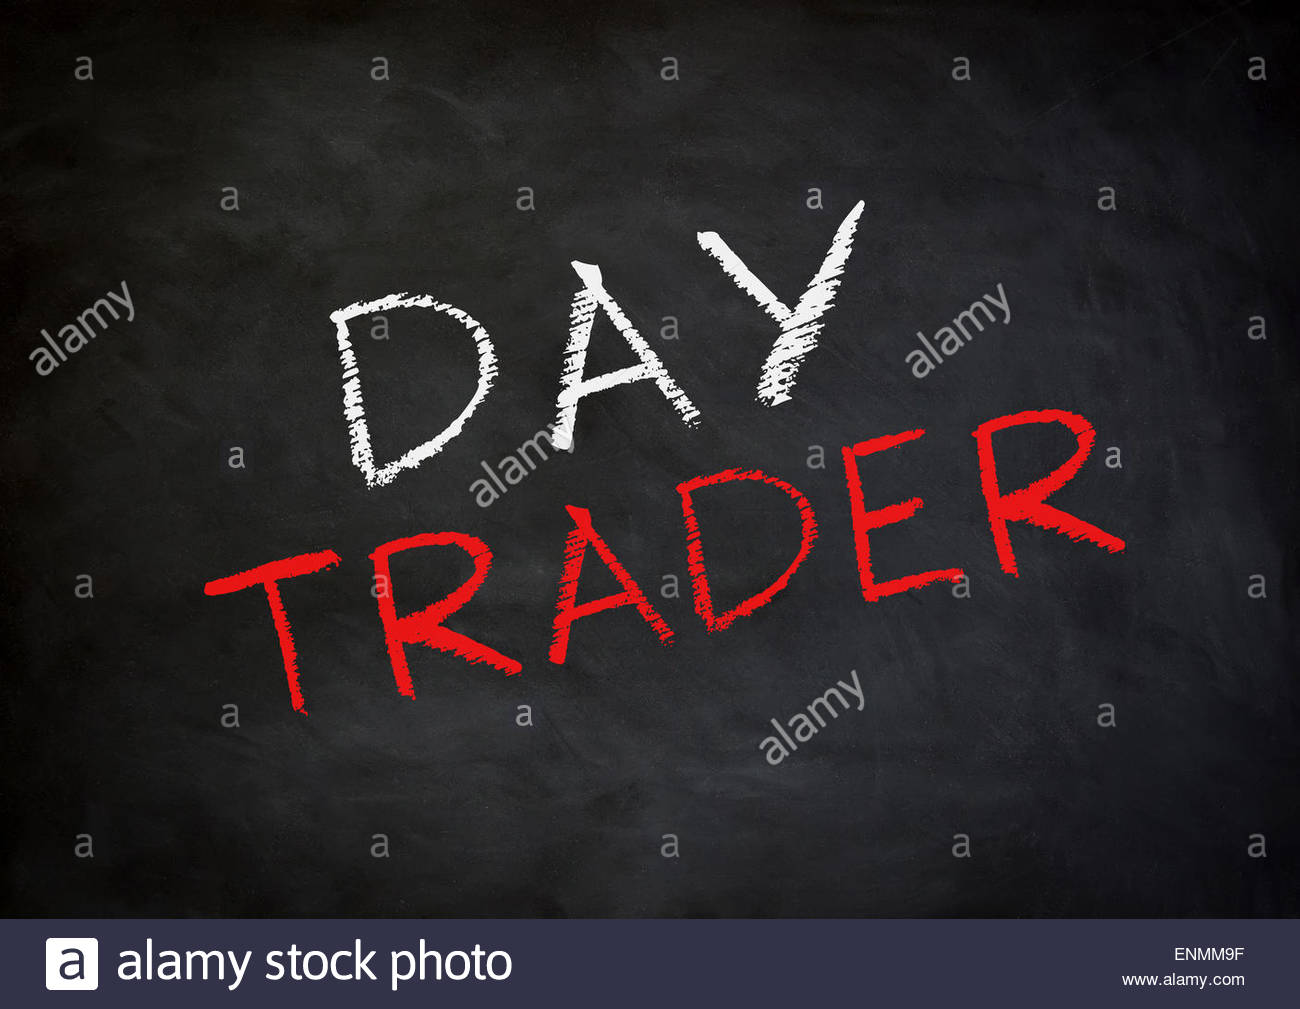 Day Trader - Stock Image